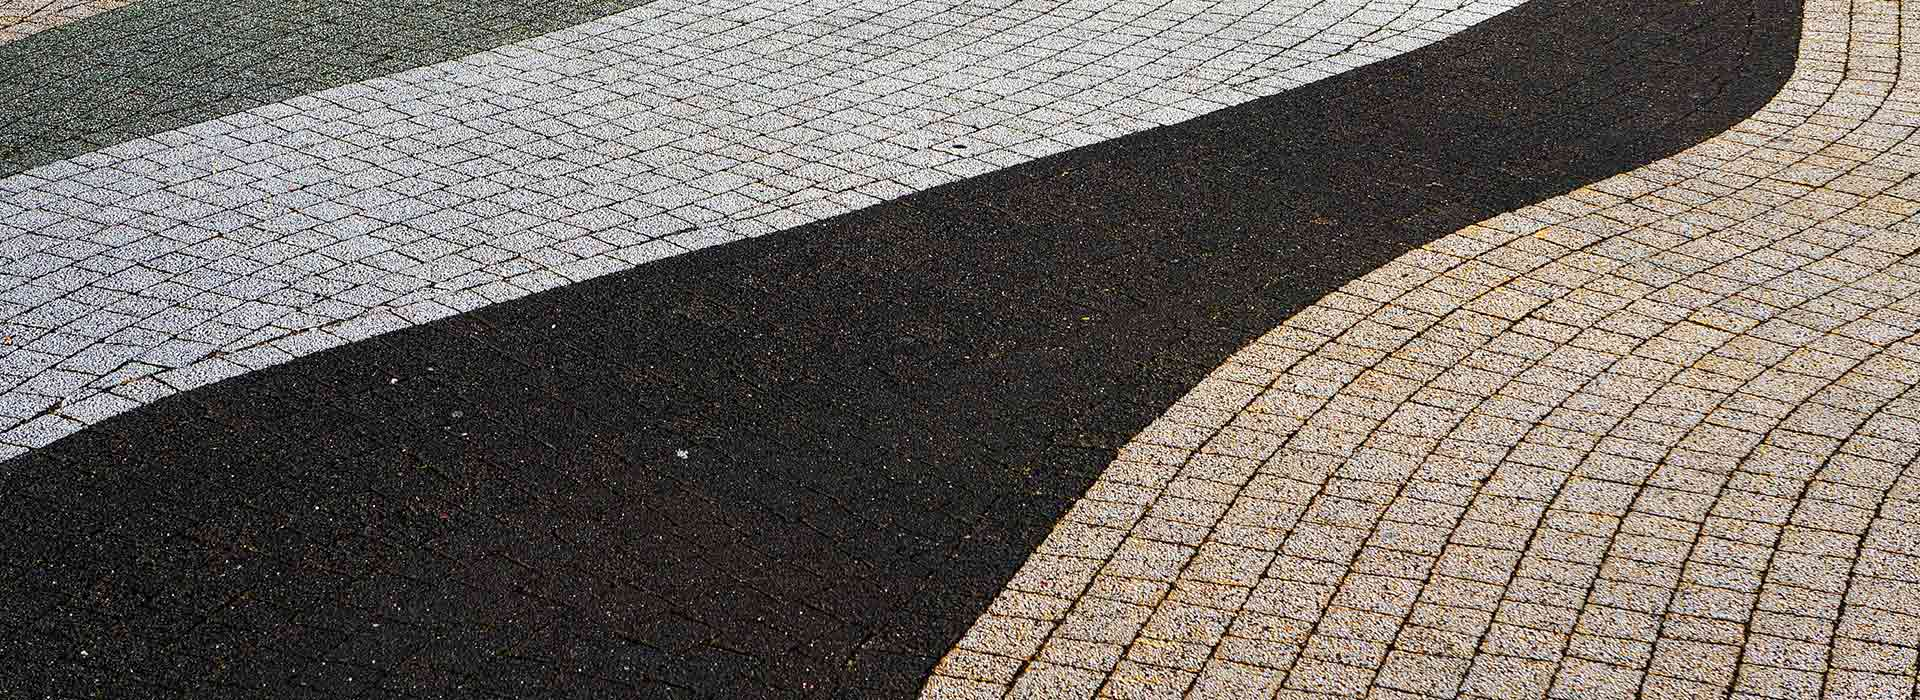 Pattern paving in a wavy abstract design